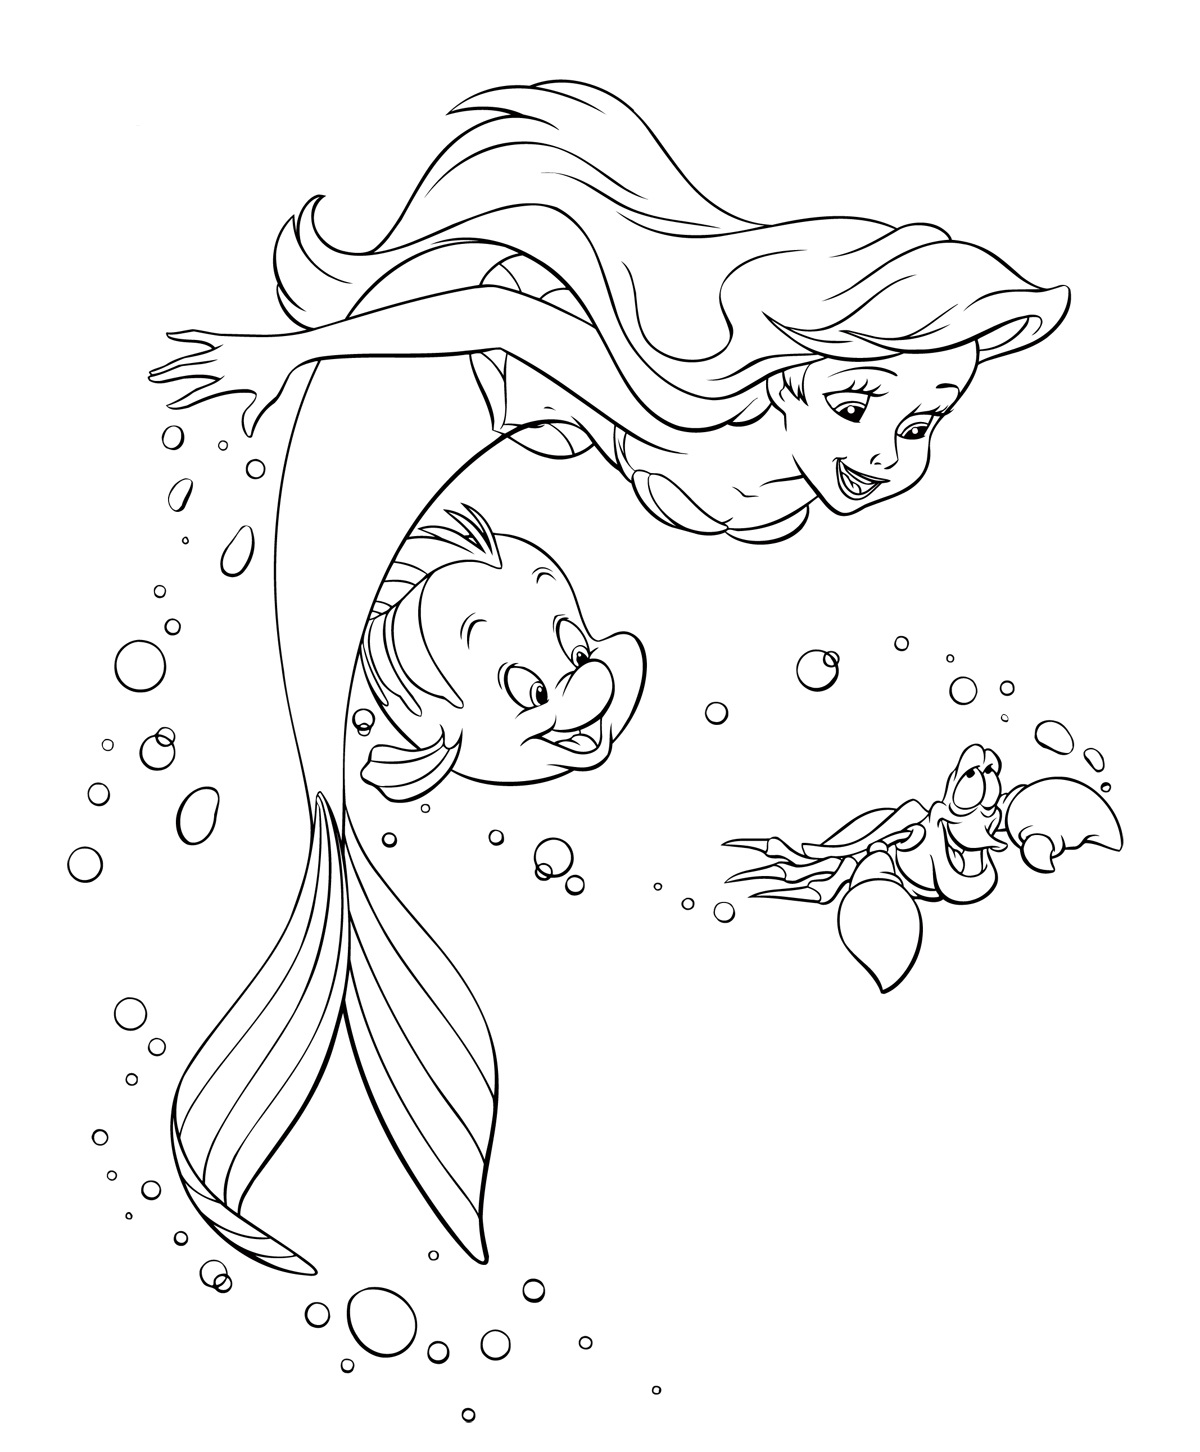 the little mermaid coloring pages the little mermaid printable coloring pages 3 disney the pages coloring little mermaid